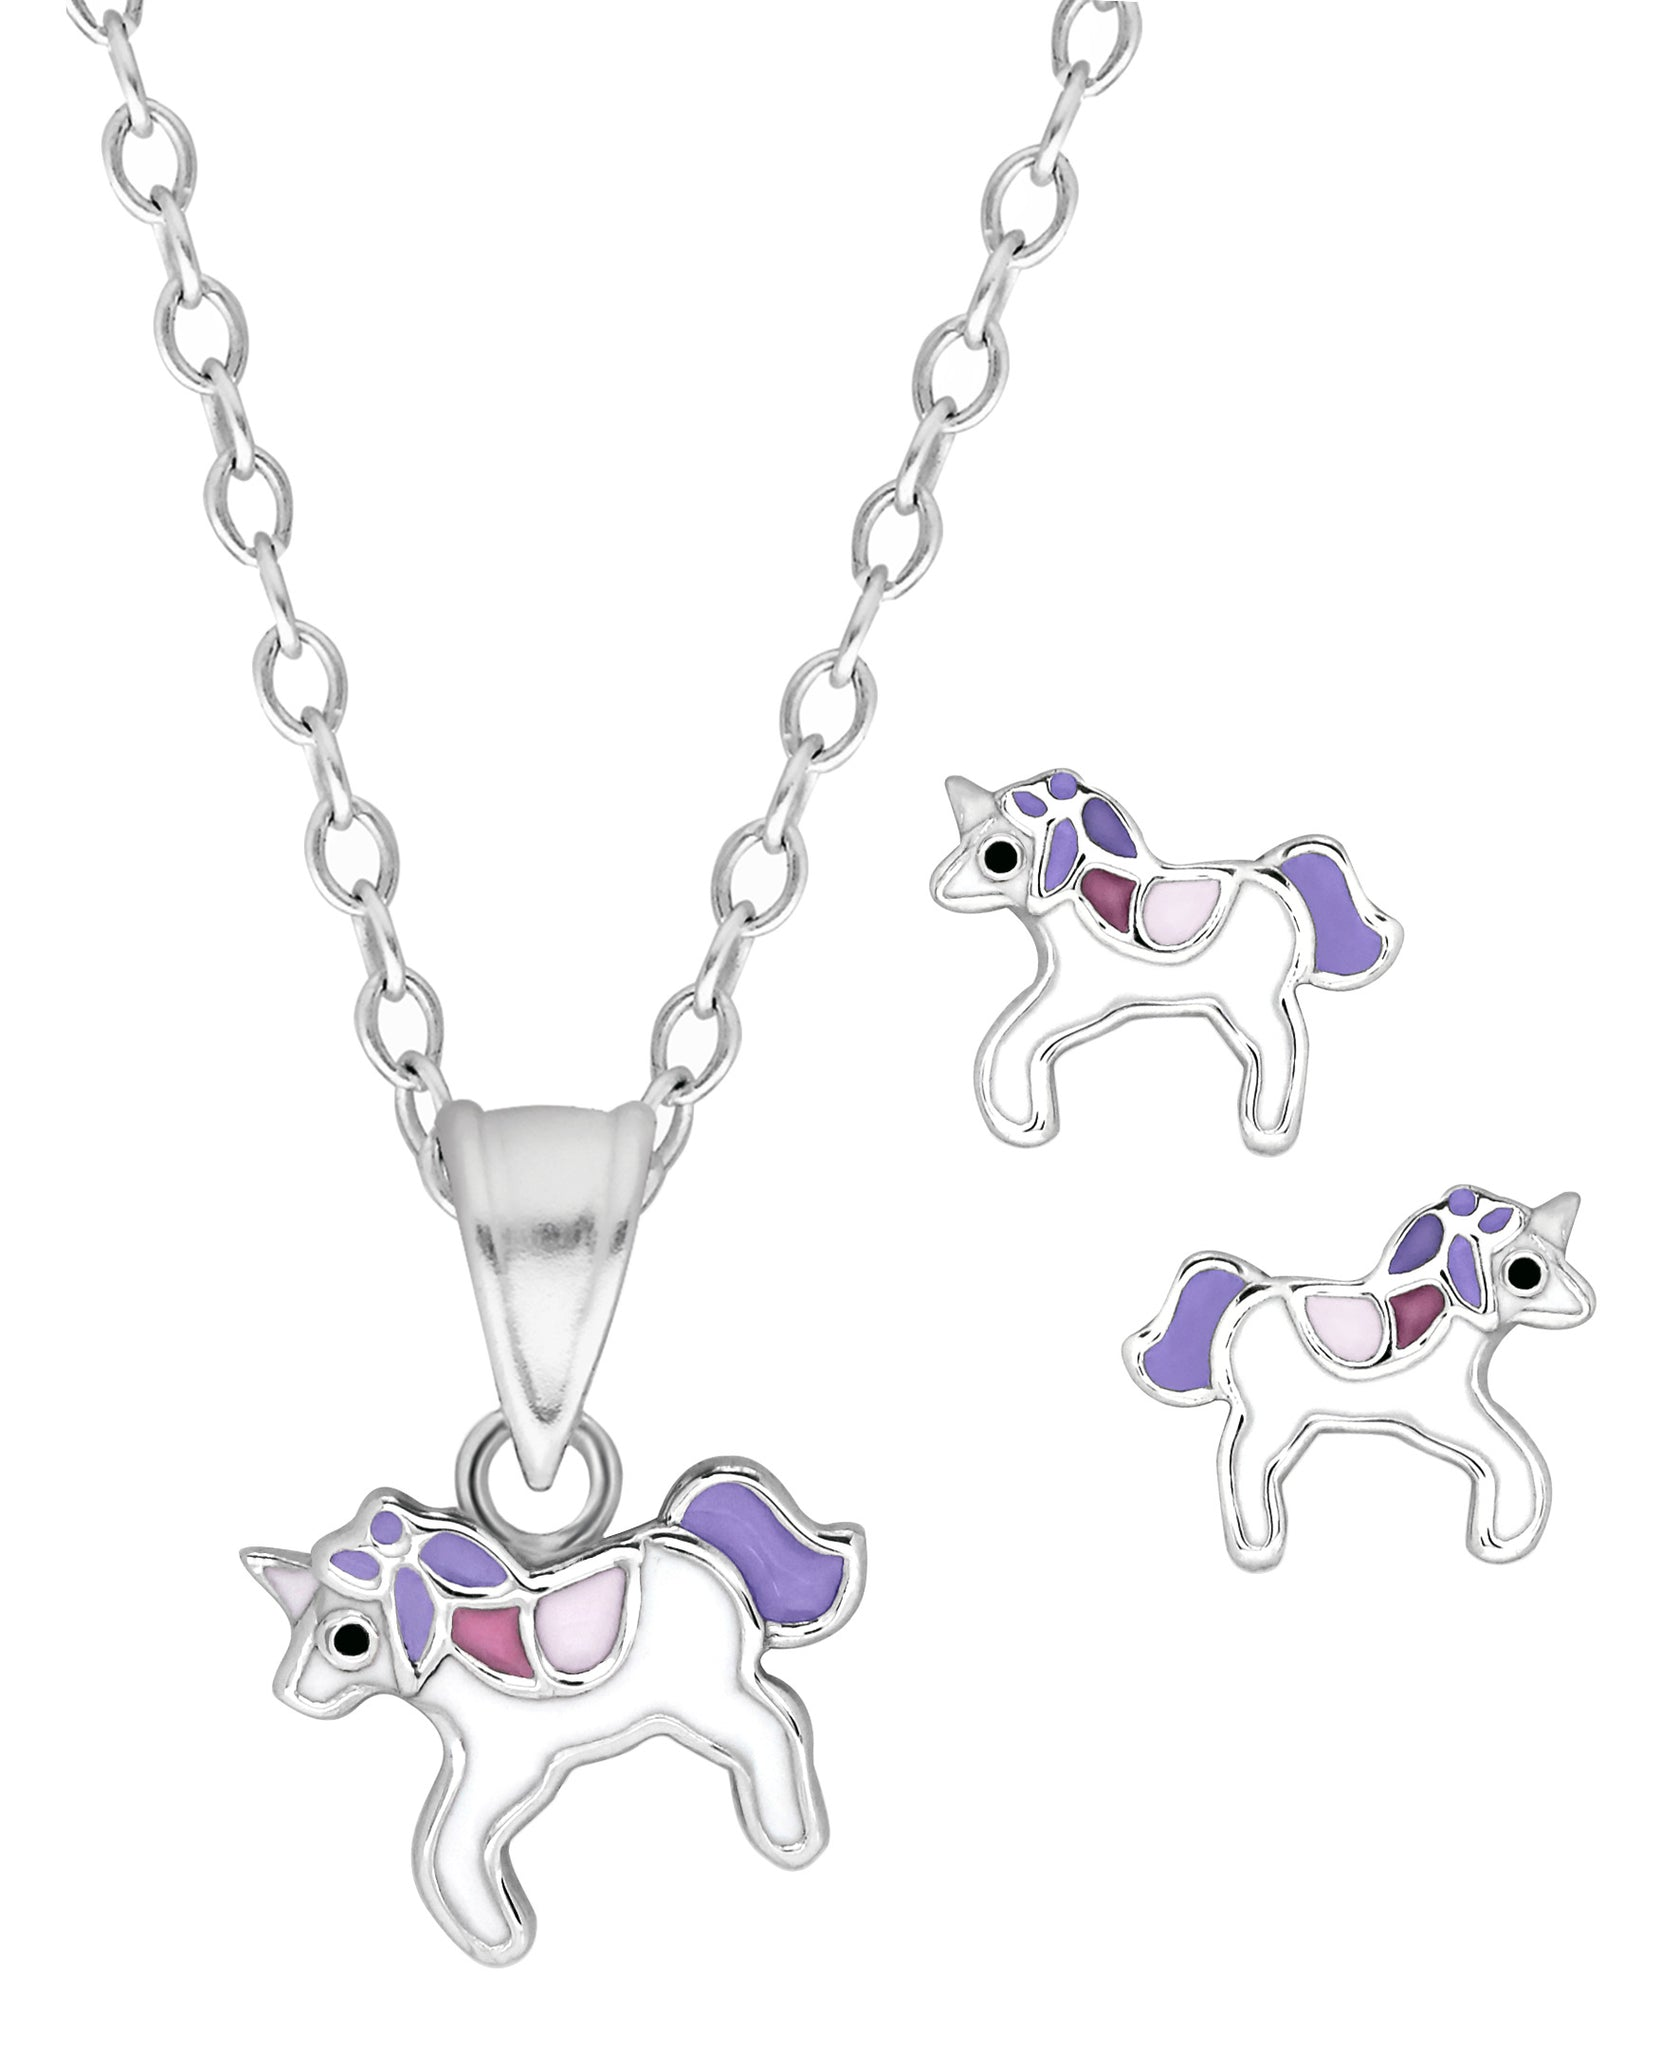 Children's Sterling Silver Purple Unicorn Pendant Necklace & Stud Earrings Set - Rhona Sutton Jewellery